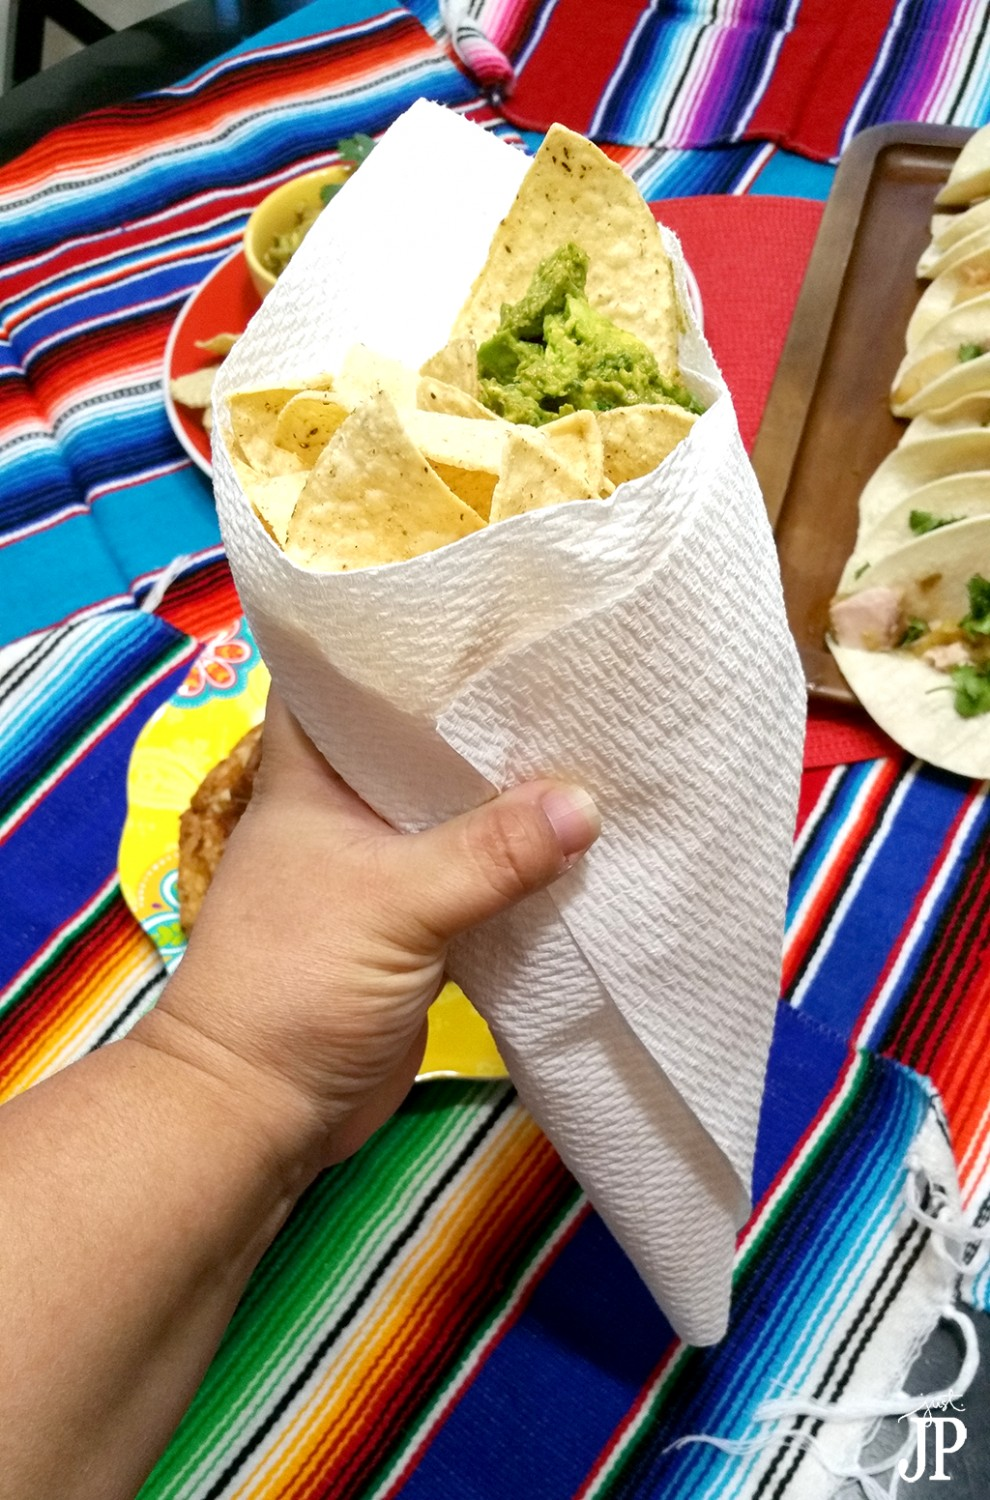 Roll-3-Viva-Towels-into-Cone-for-Tortilla-Chips-and-Guacamole-JPriest